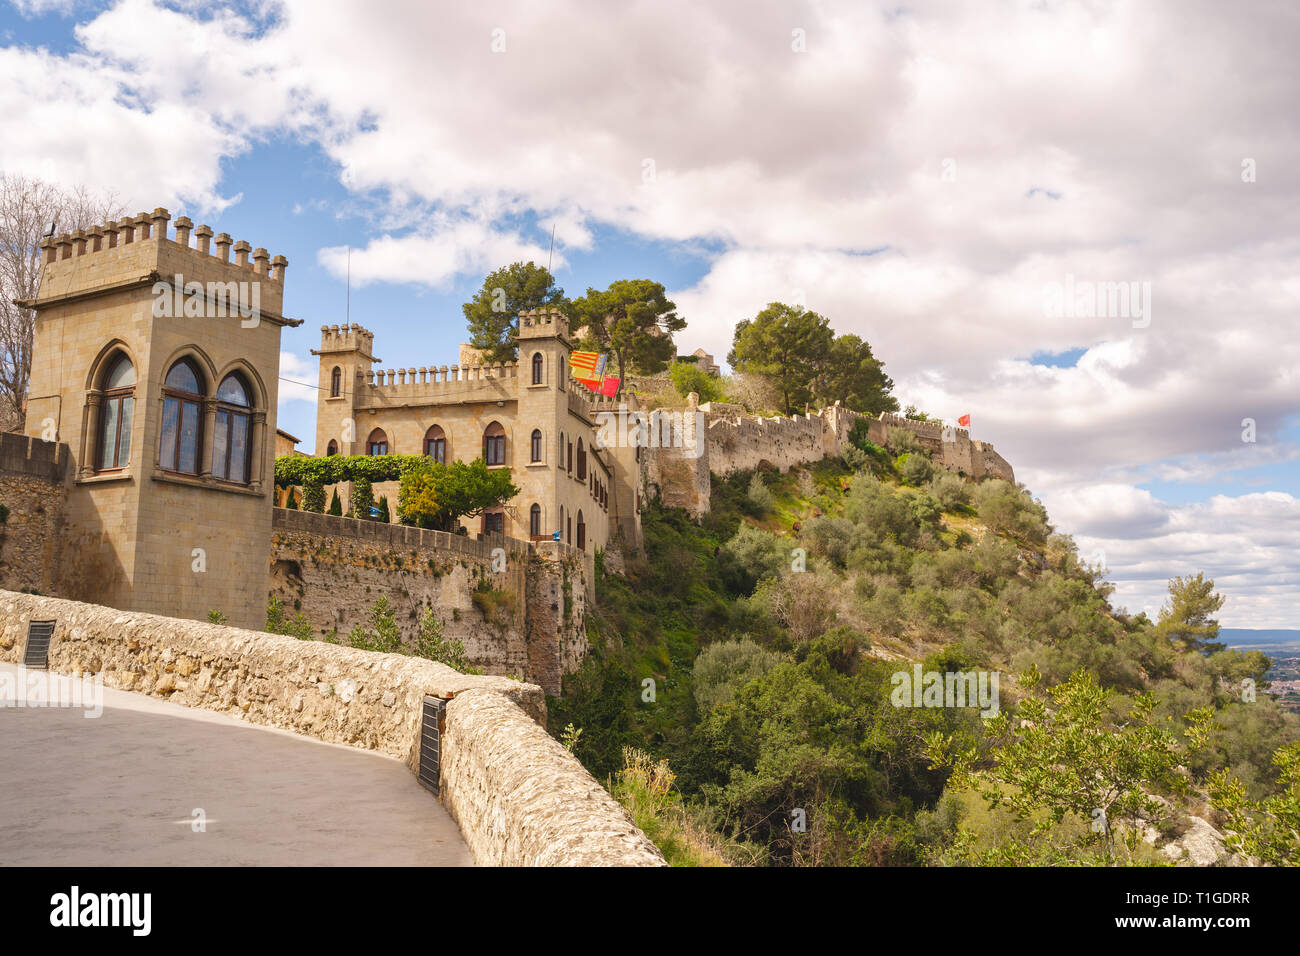 Xativa fortress. View to the mountains and skyes. Medieval construction, castle on the hill. - Stock Image